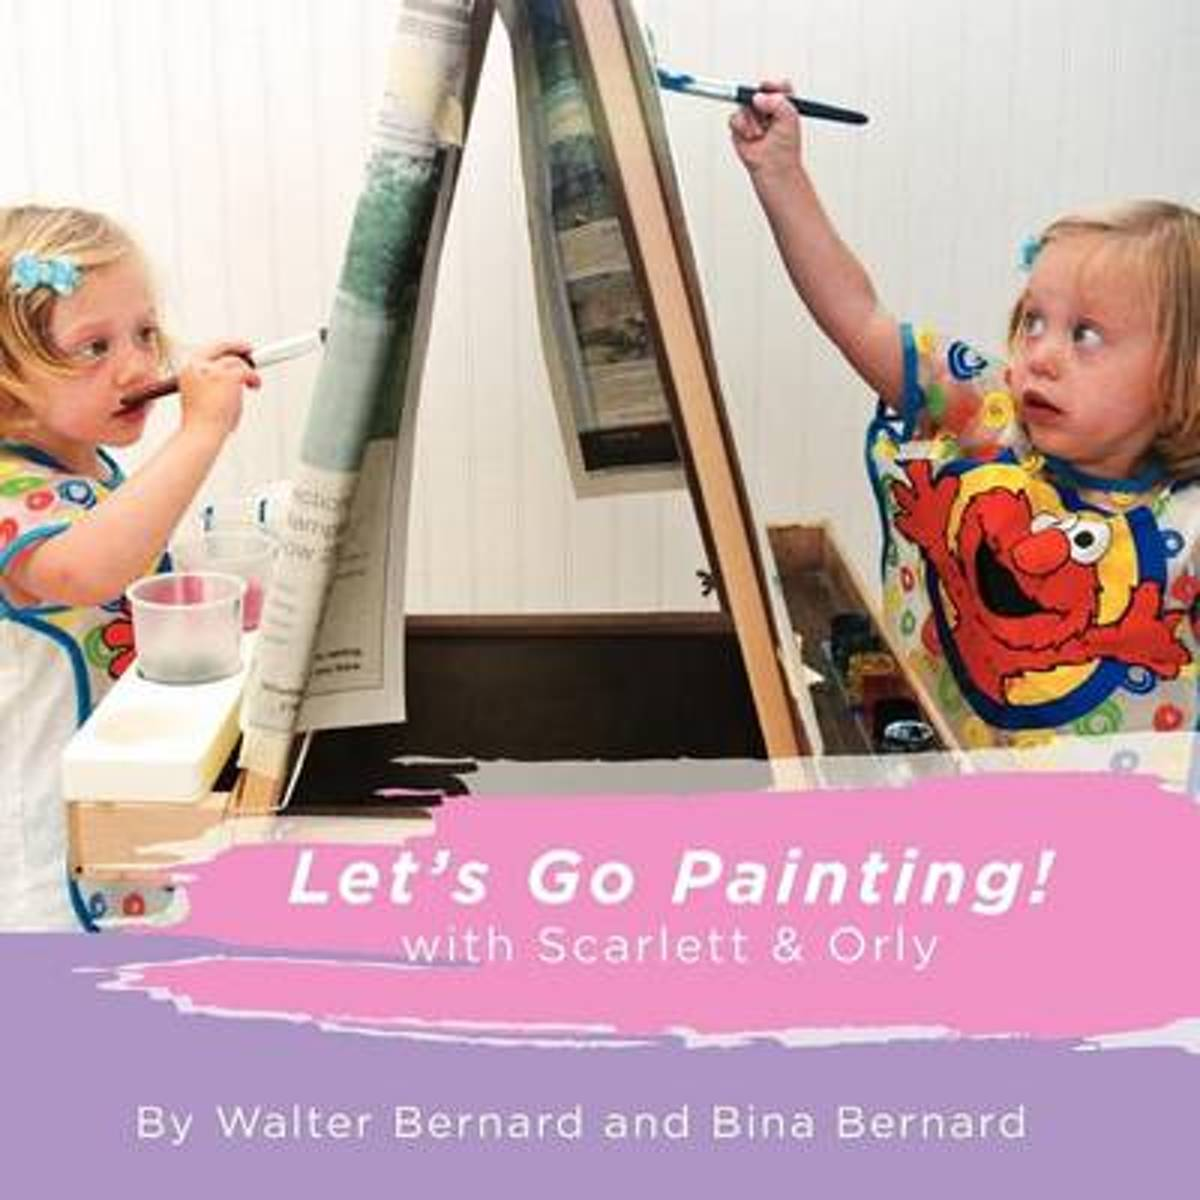 Let's Go Painting!